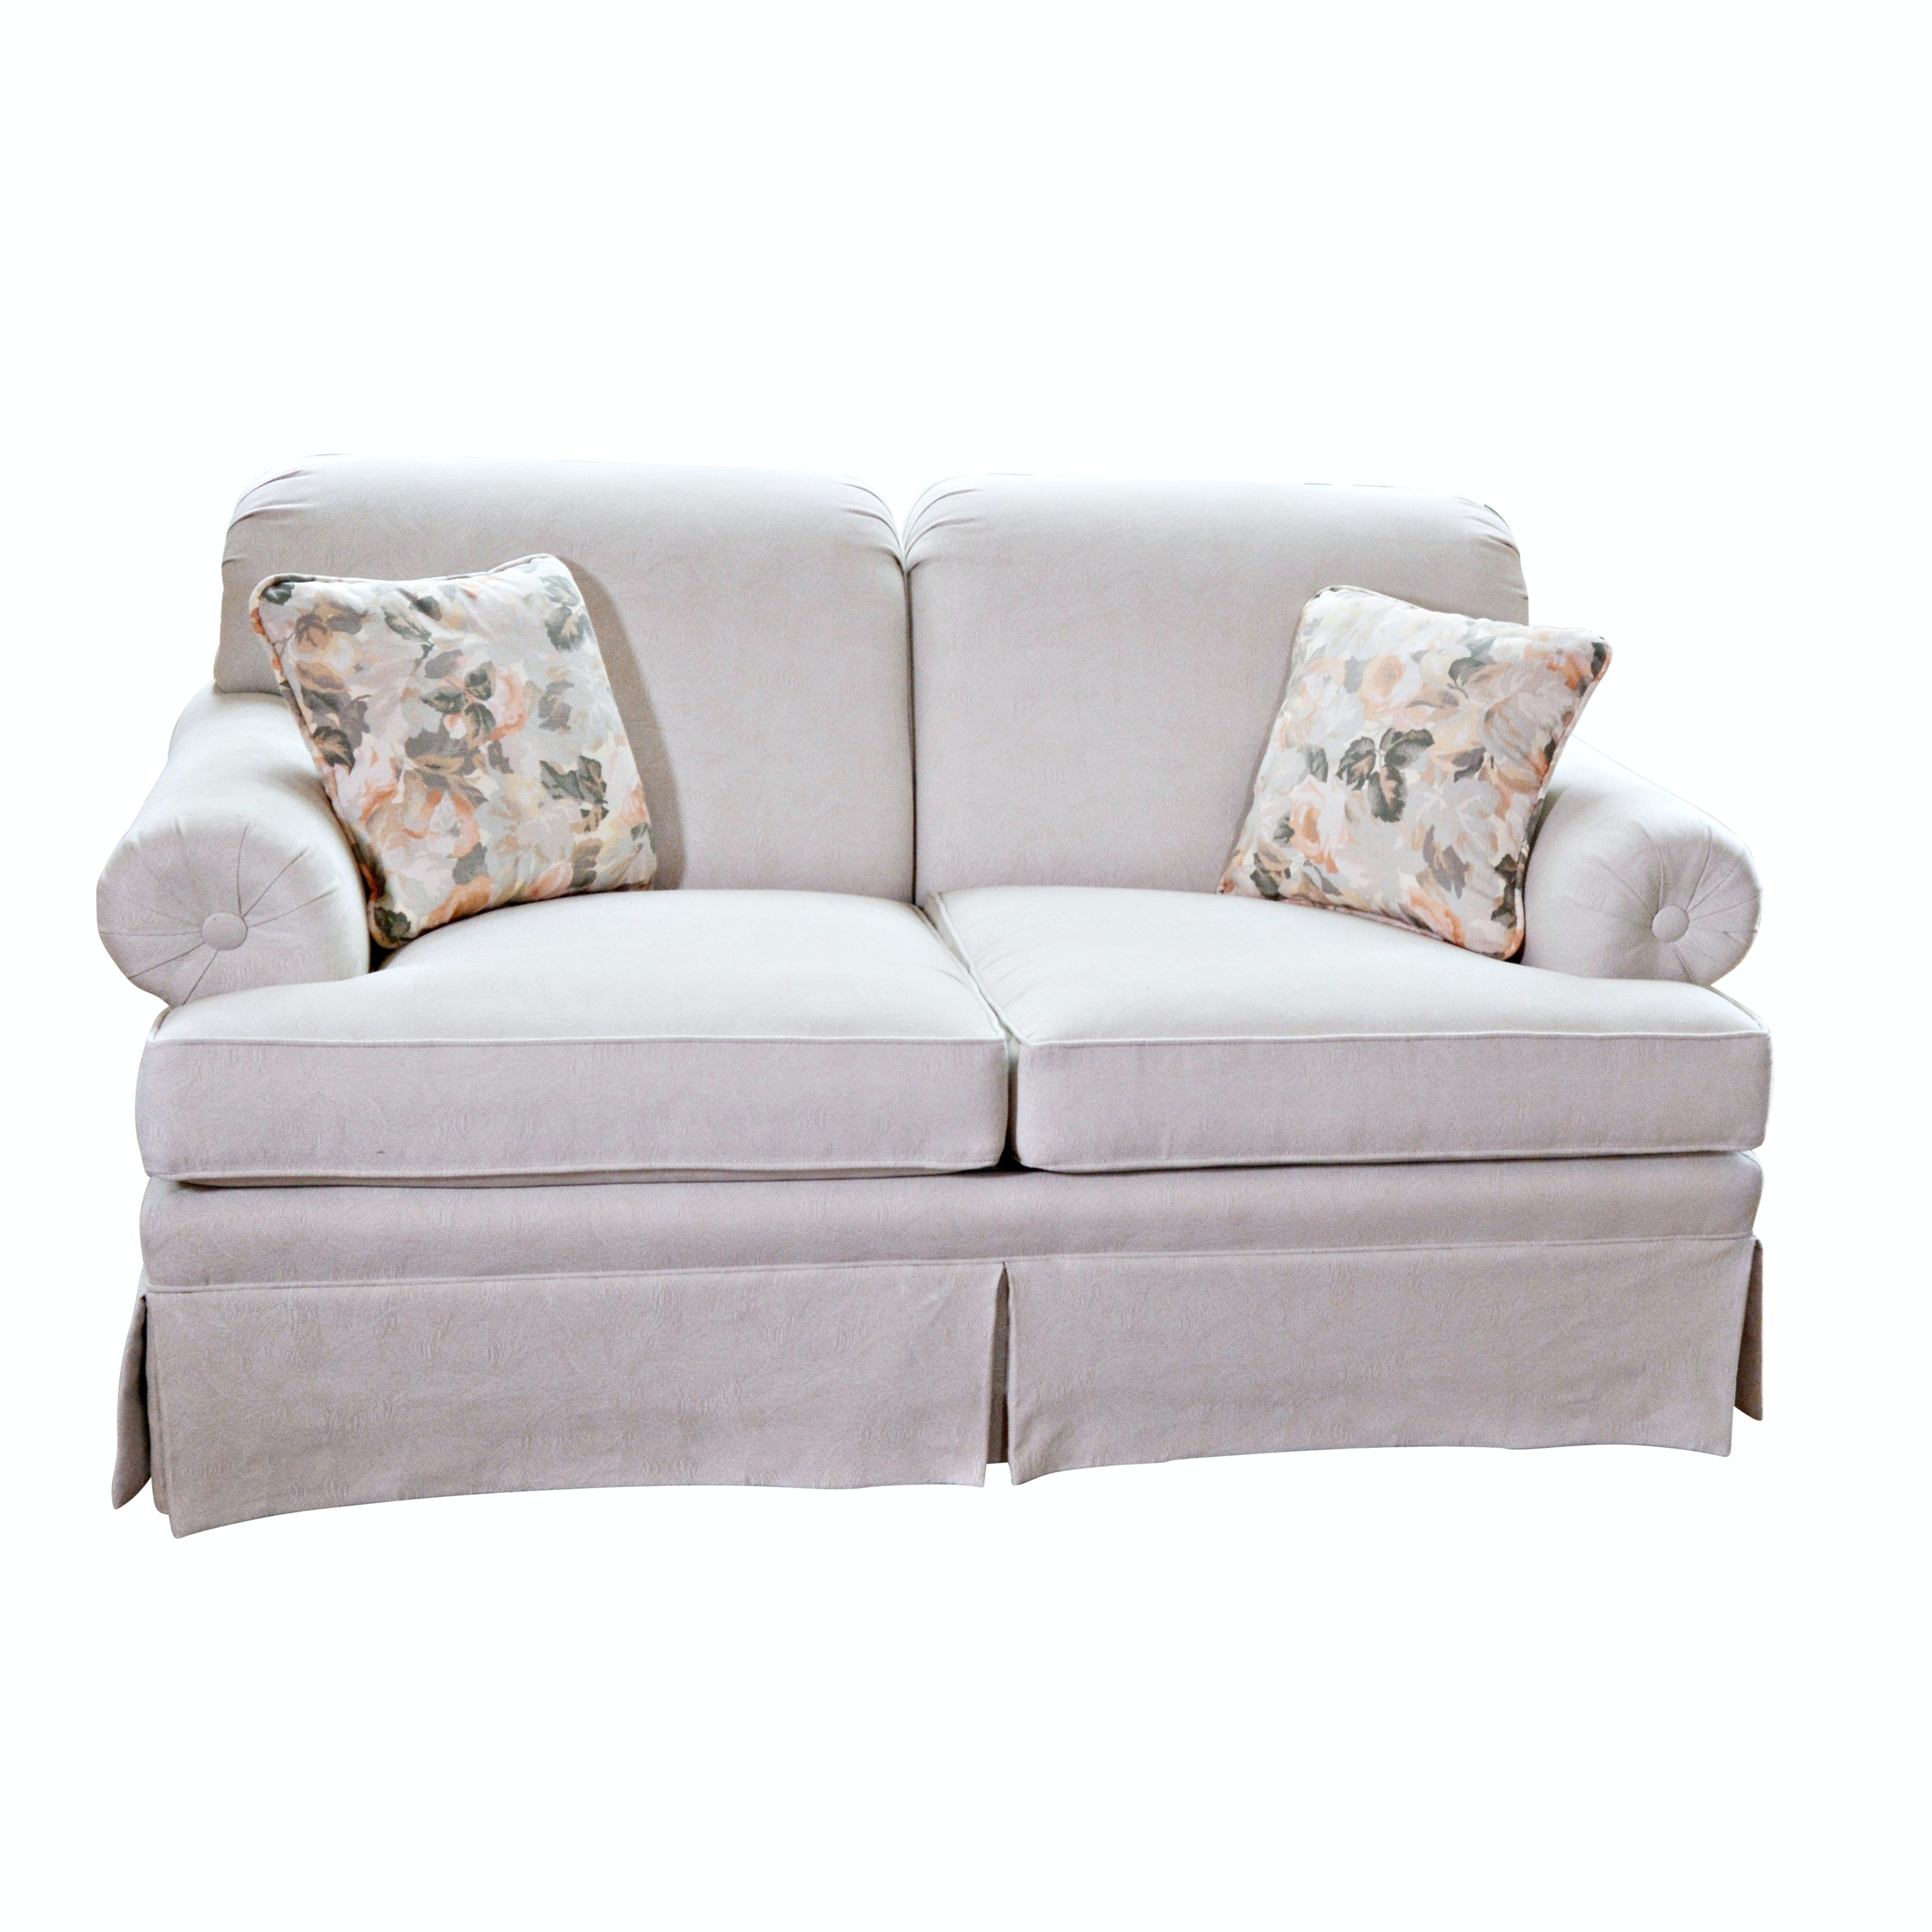 Contemporary Taupe Patterned Loveseat by Ethan Allen